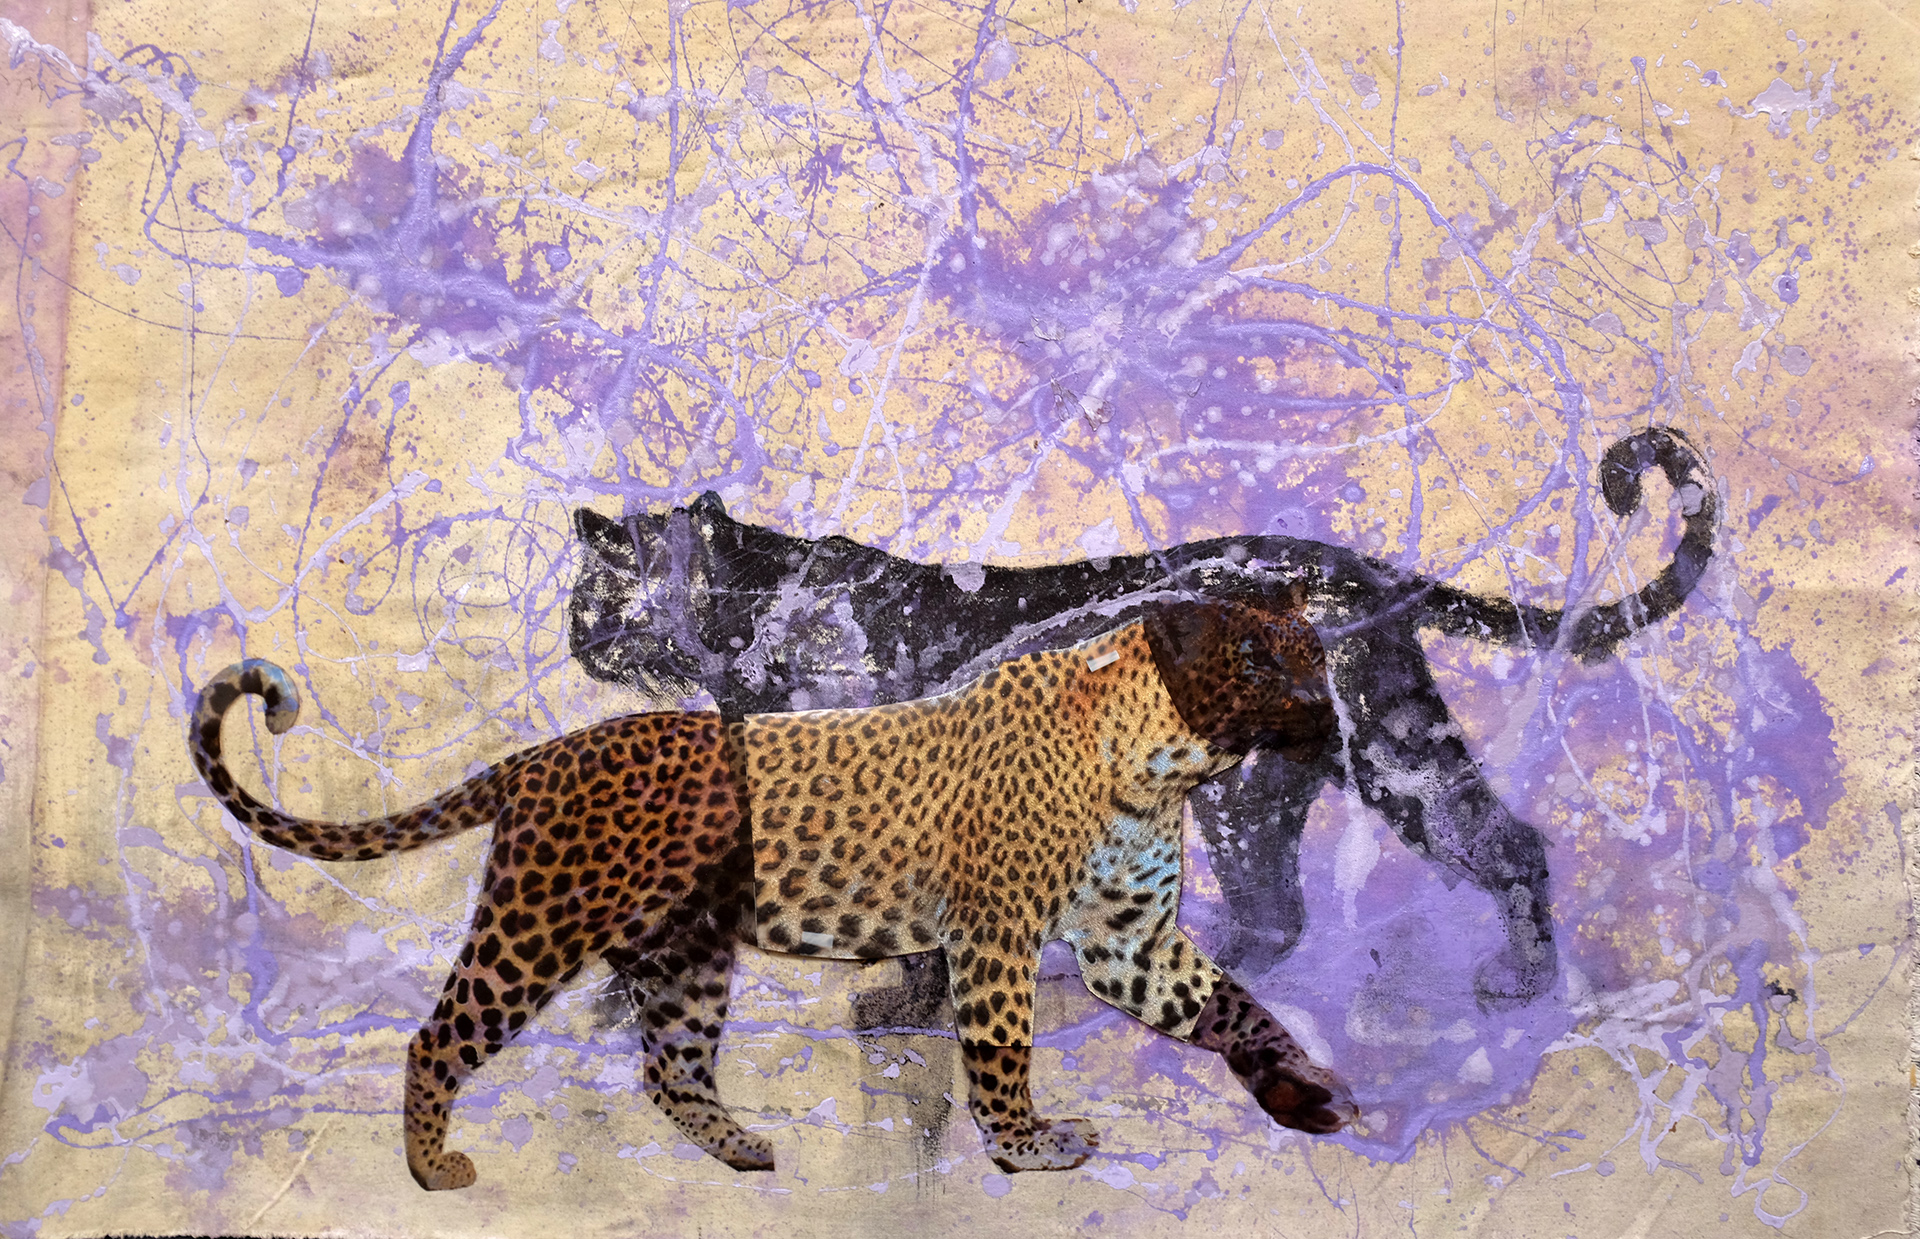 Leopards passing in a purple spatter milieu of time